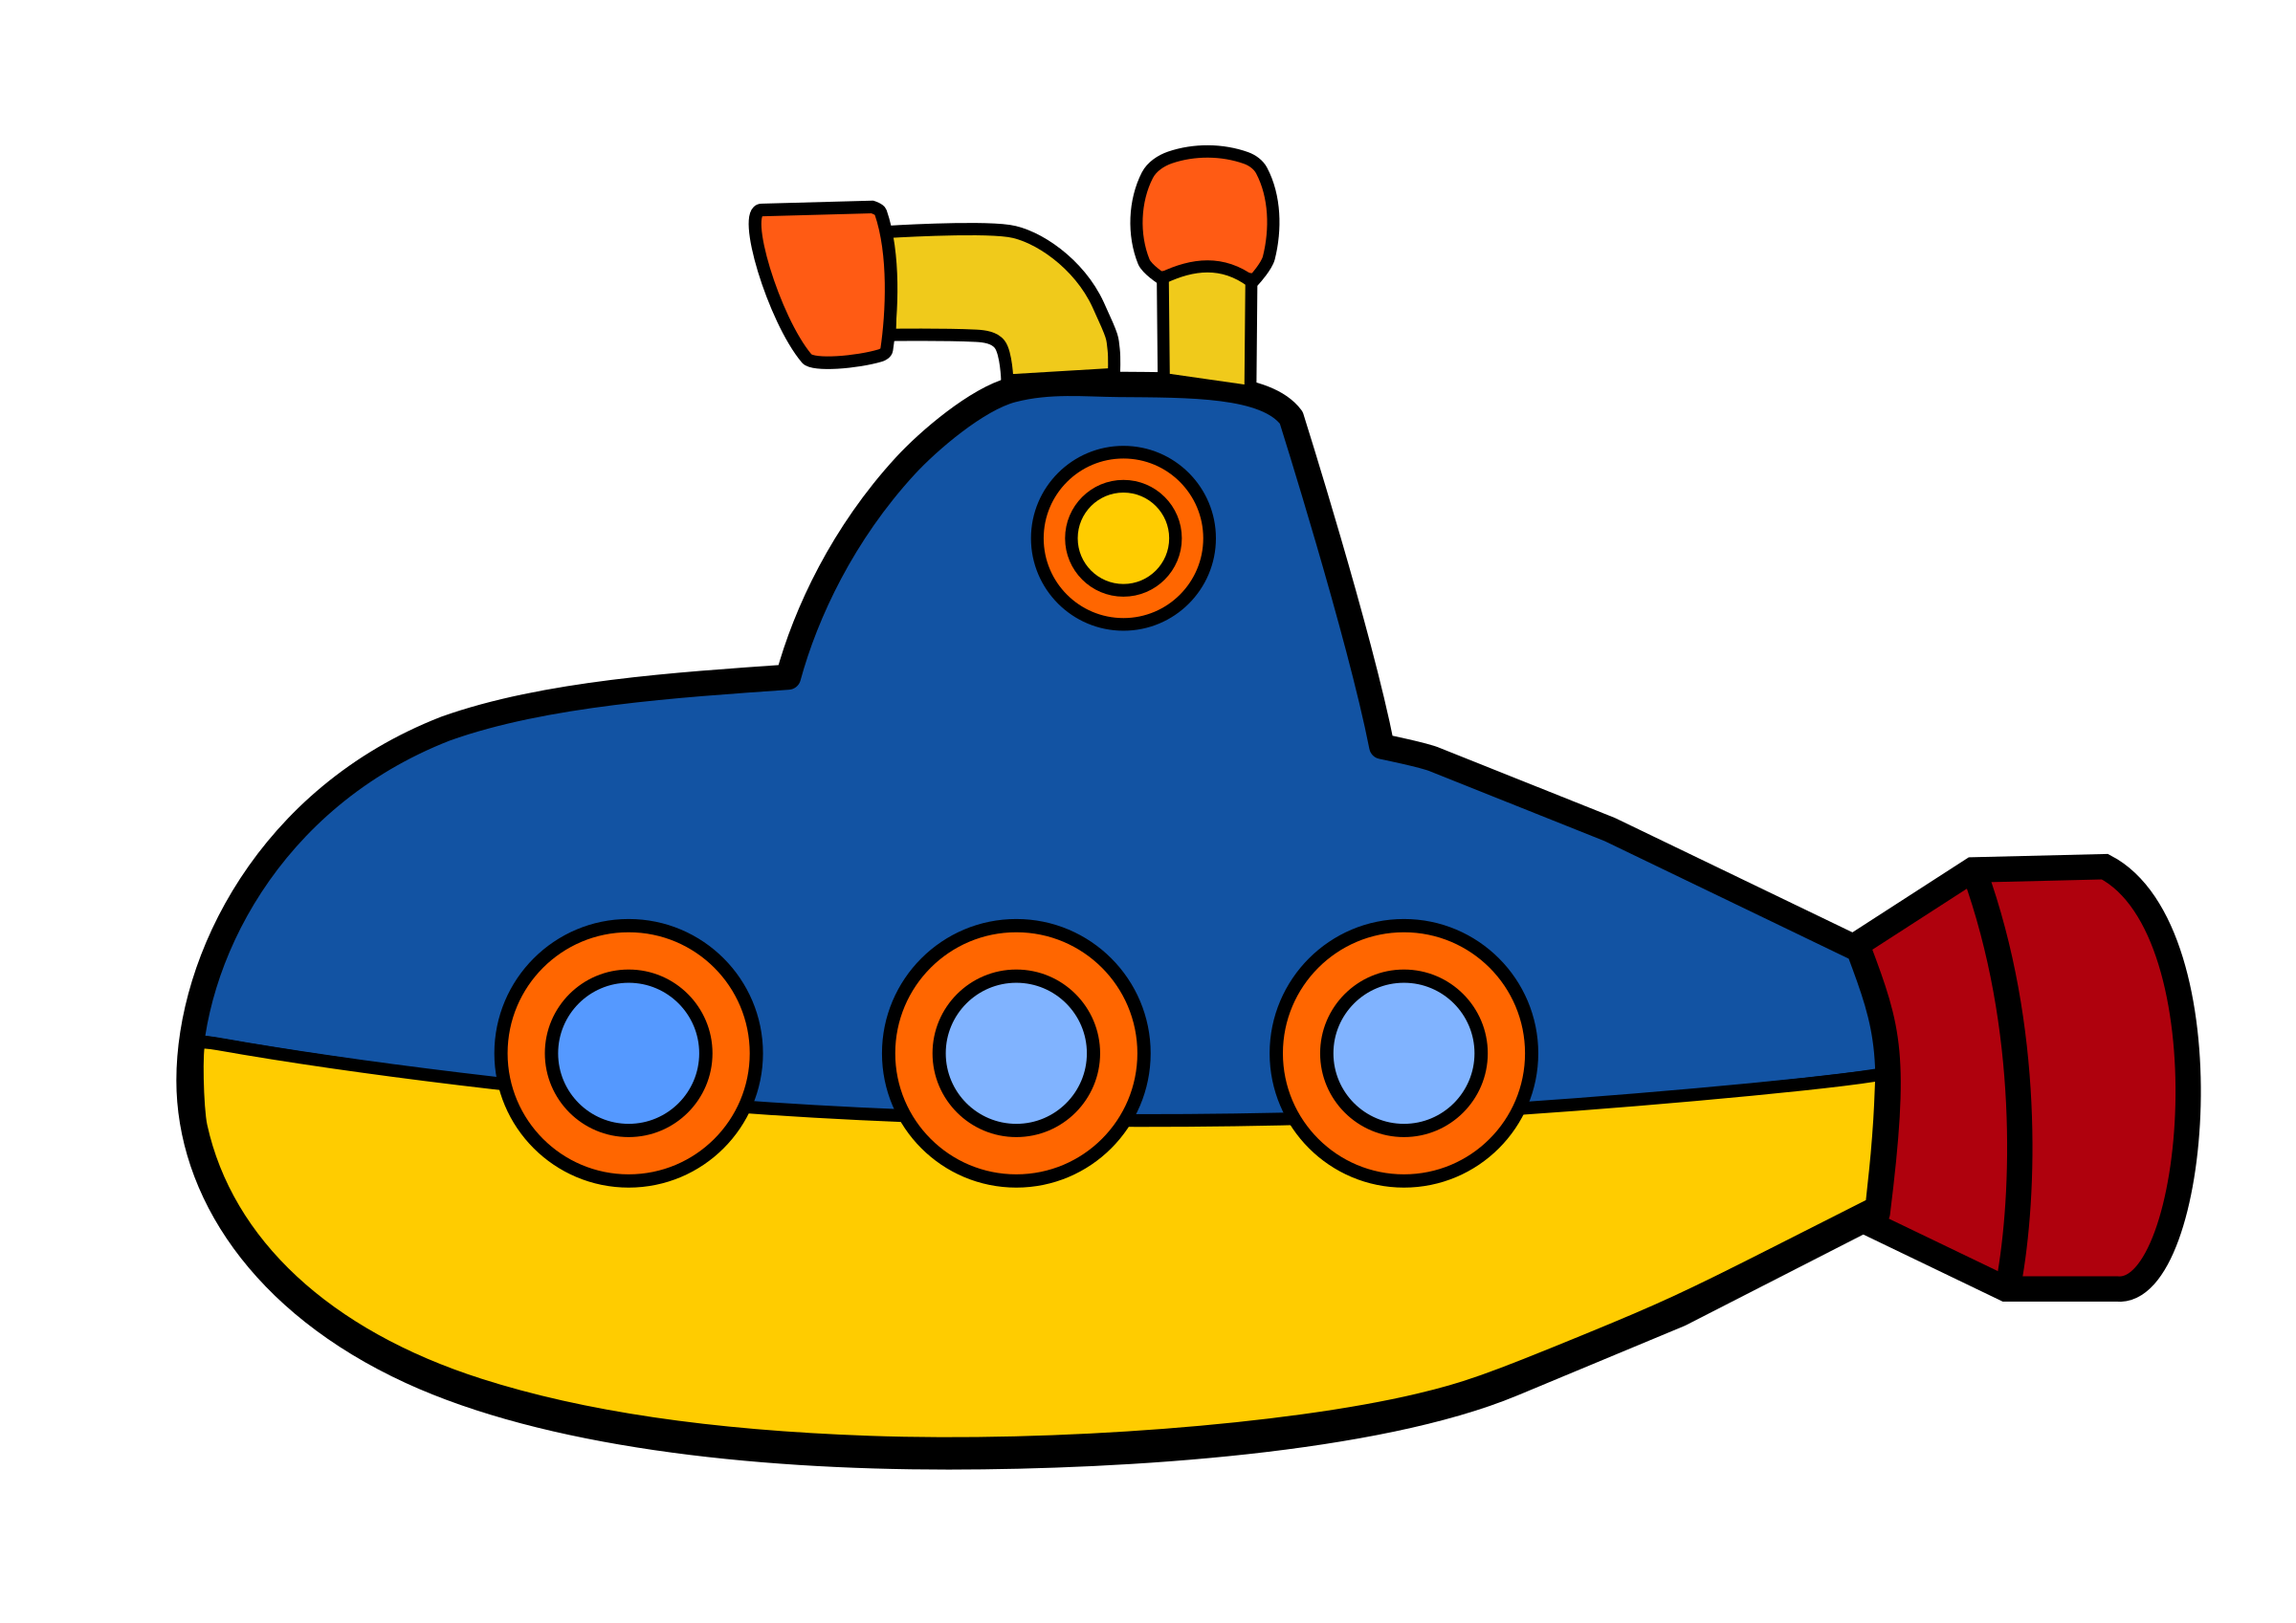 png free download Submarine clipart black and white. Toy sub by ejmillan